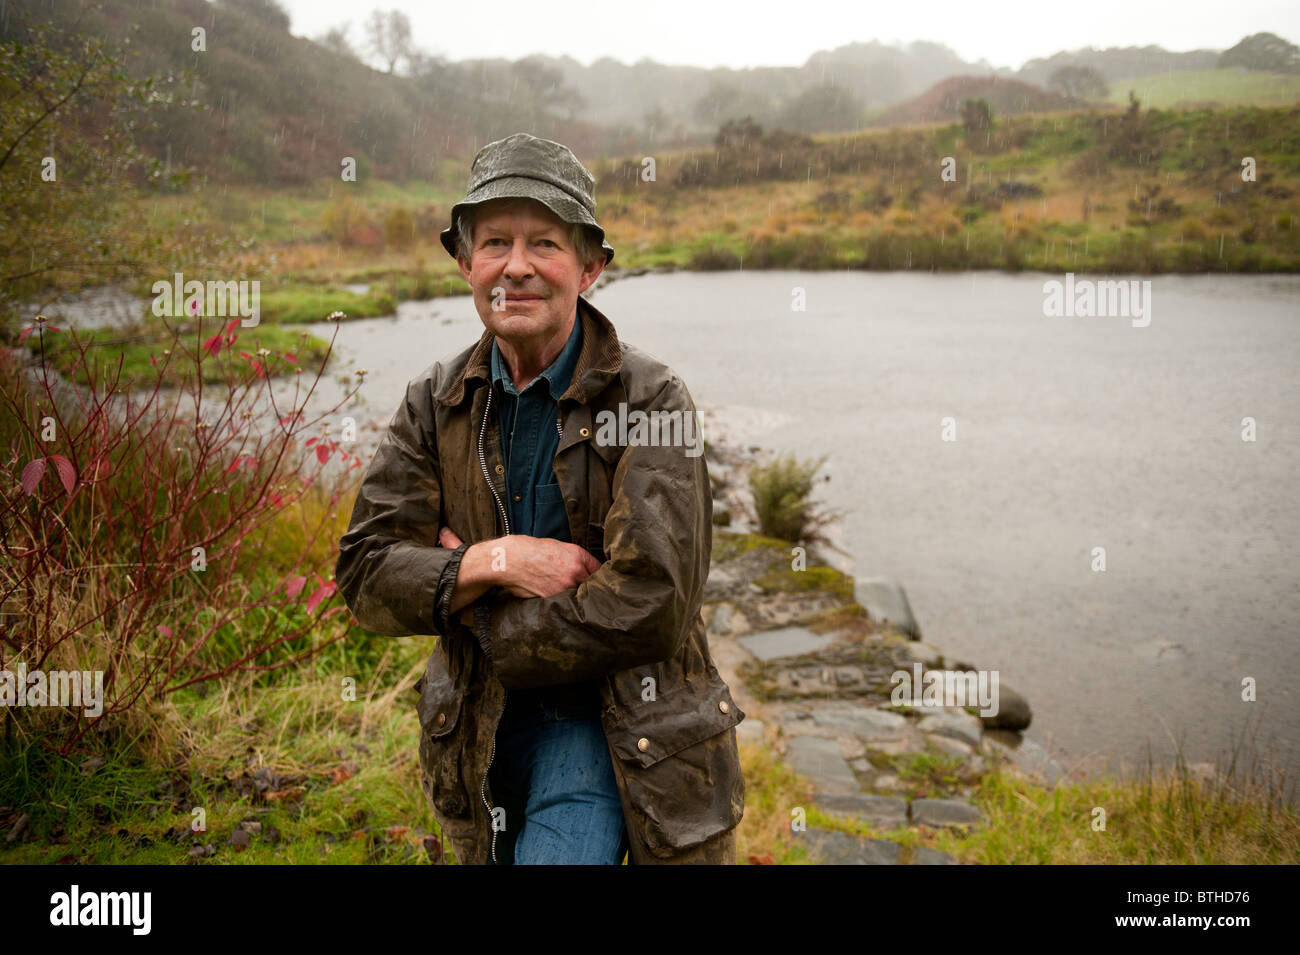 Charles Owen George. H2Hydro water powered hydro-electic schemes entrepreneur, Wales UK - Stock Image